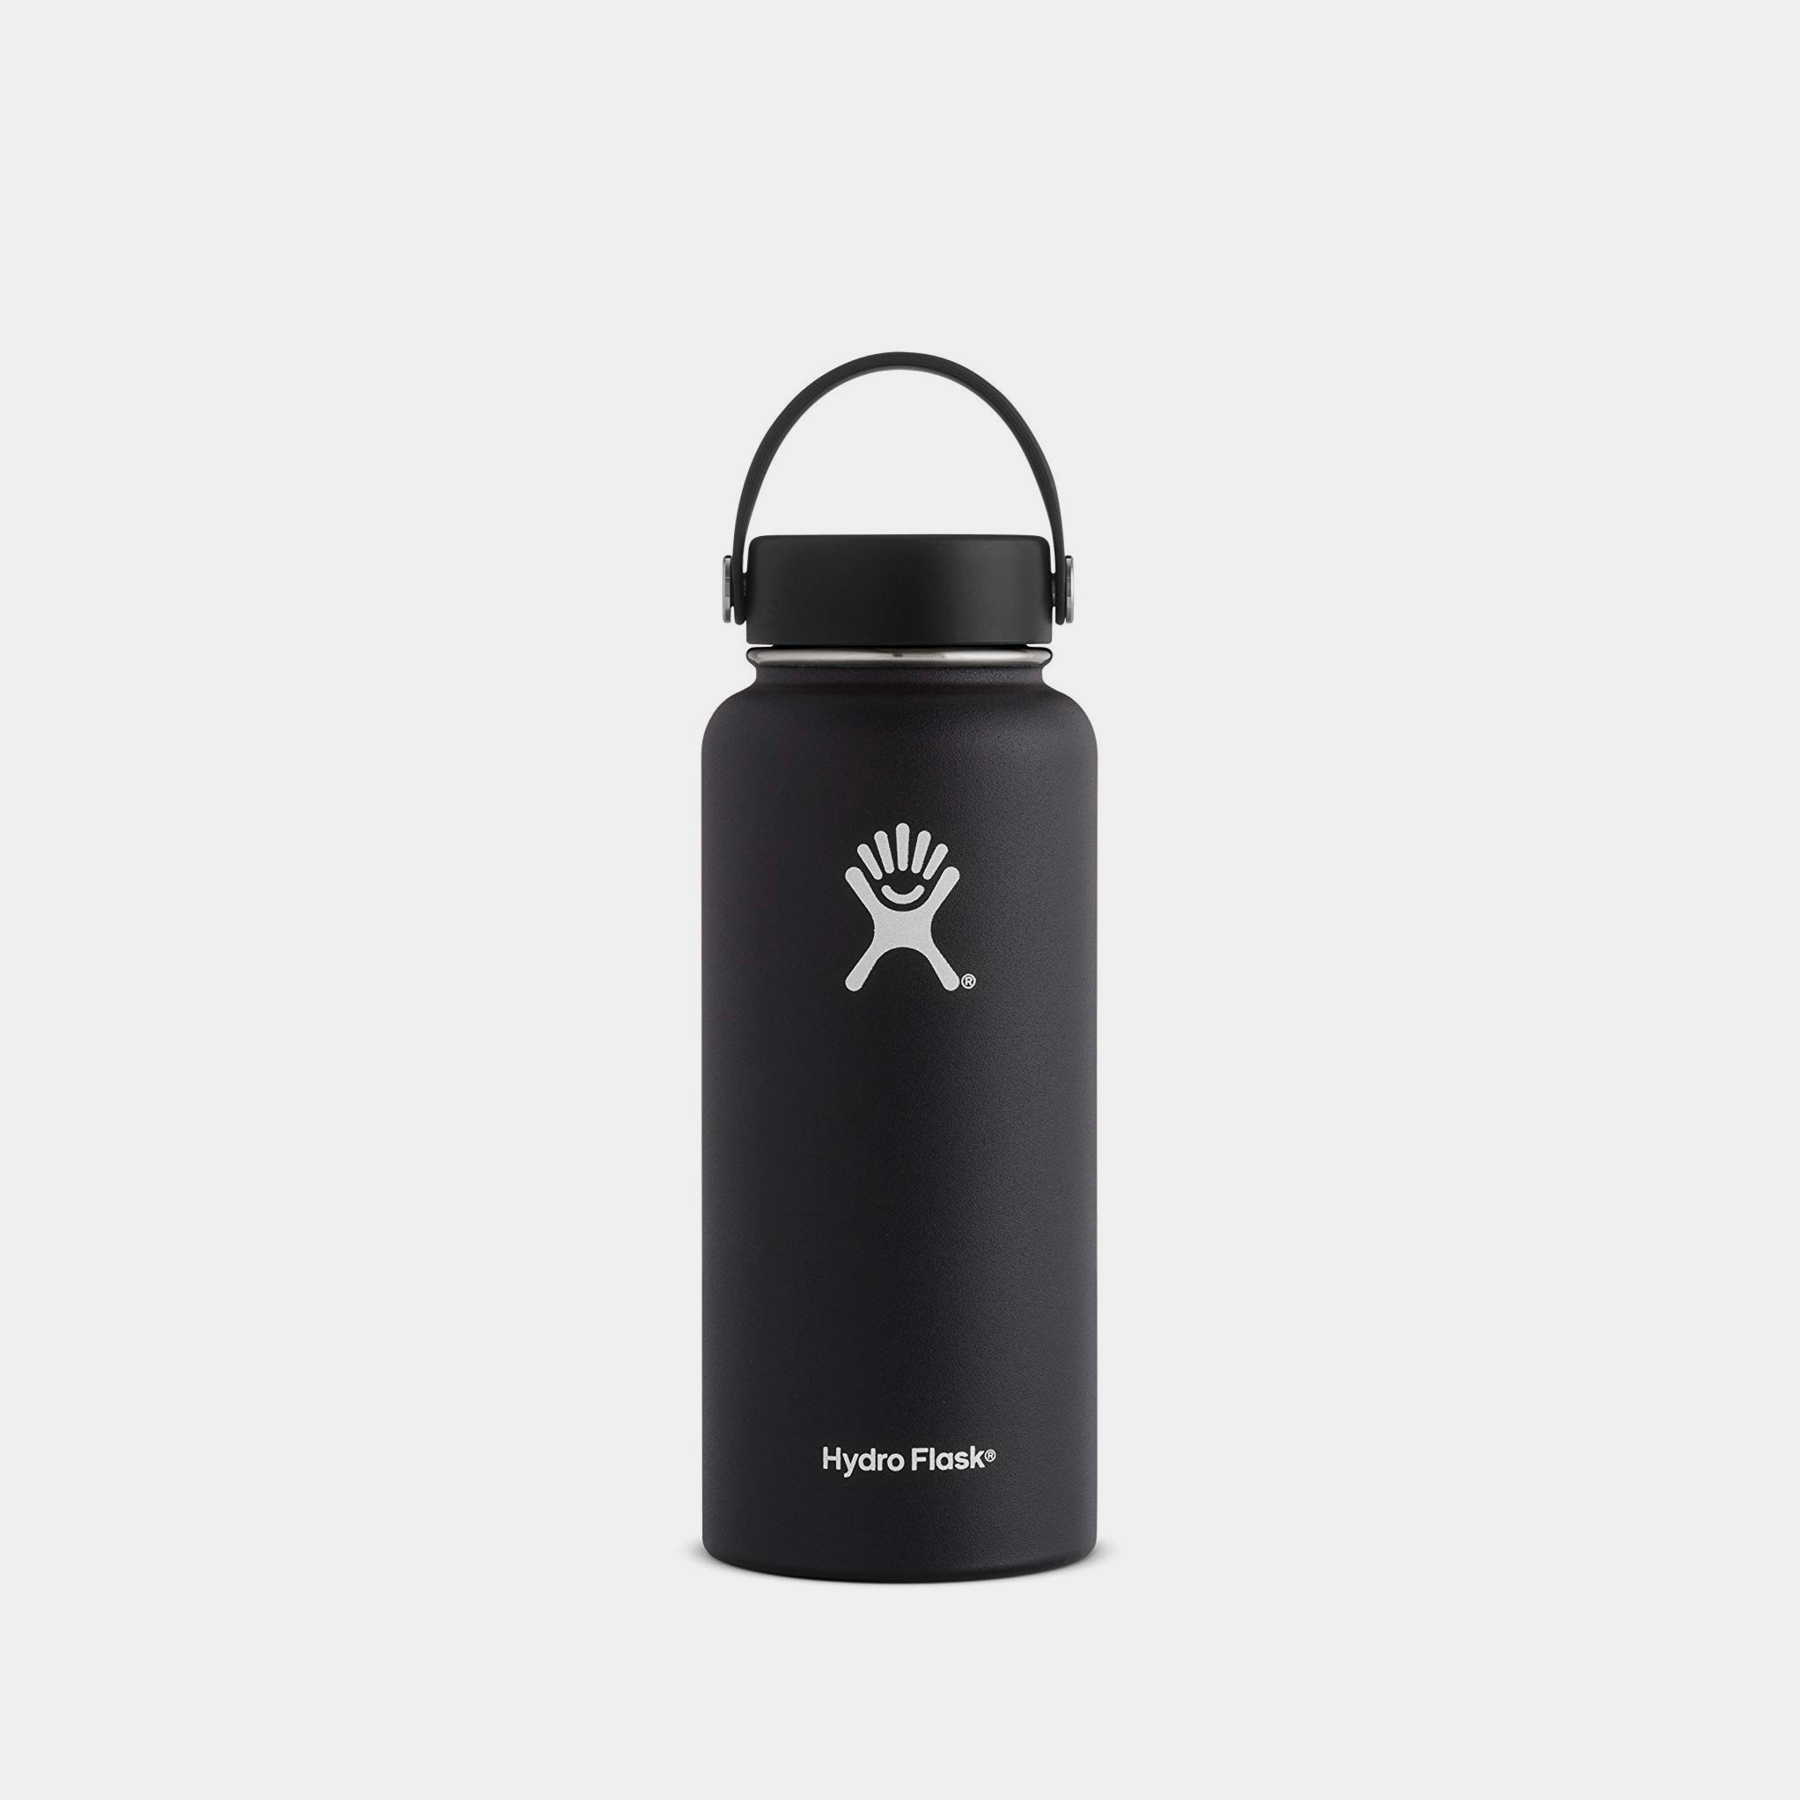 ALL-SORTS-OF-HYDRO-FLASK